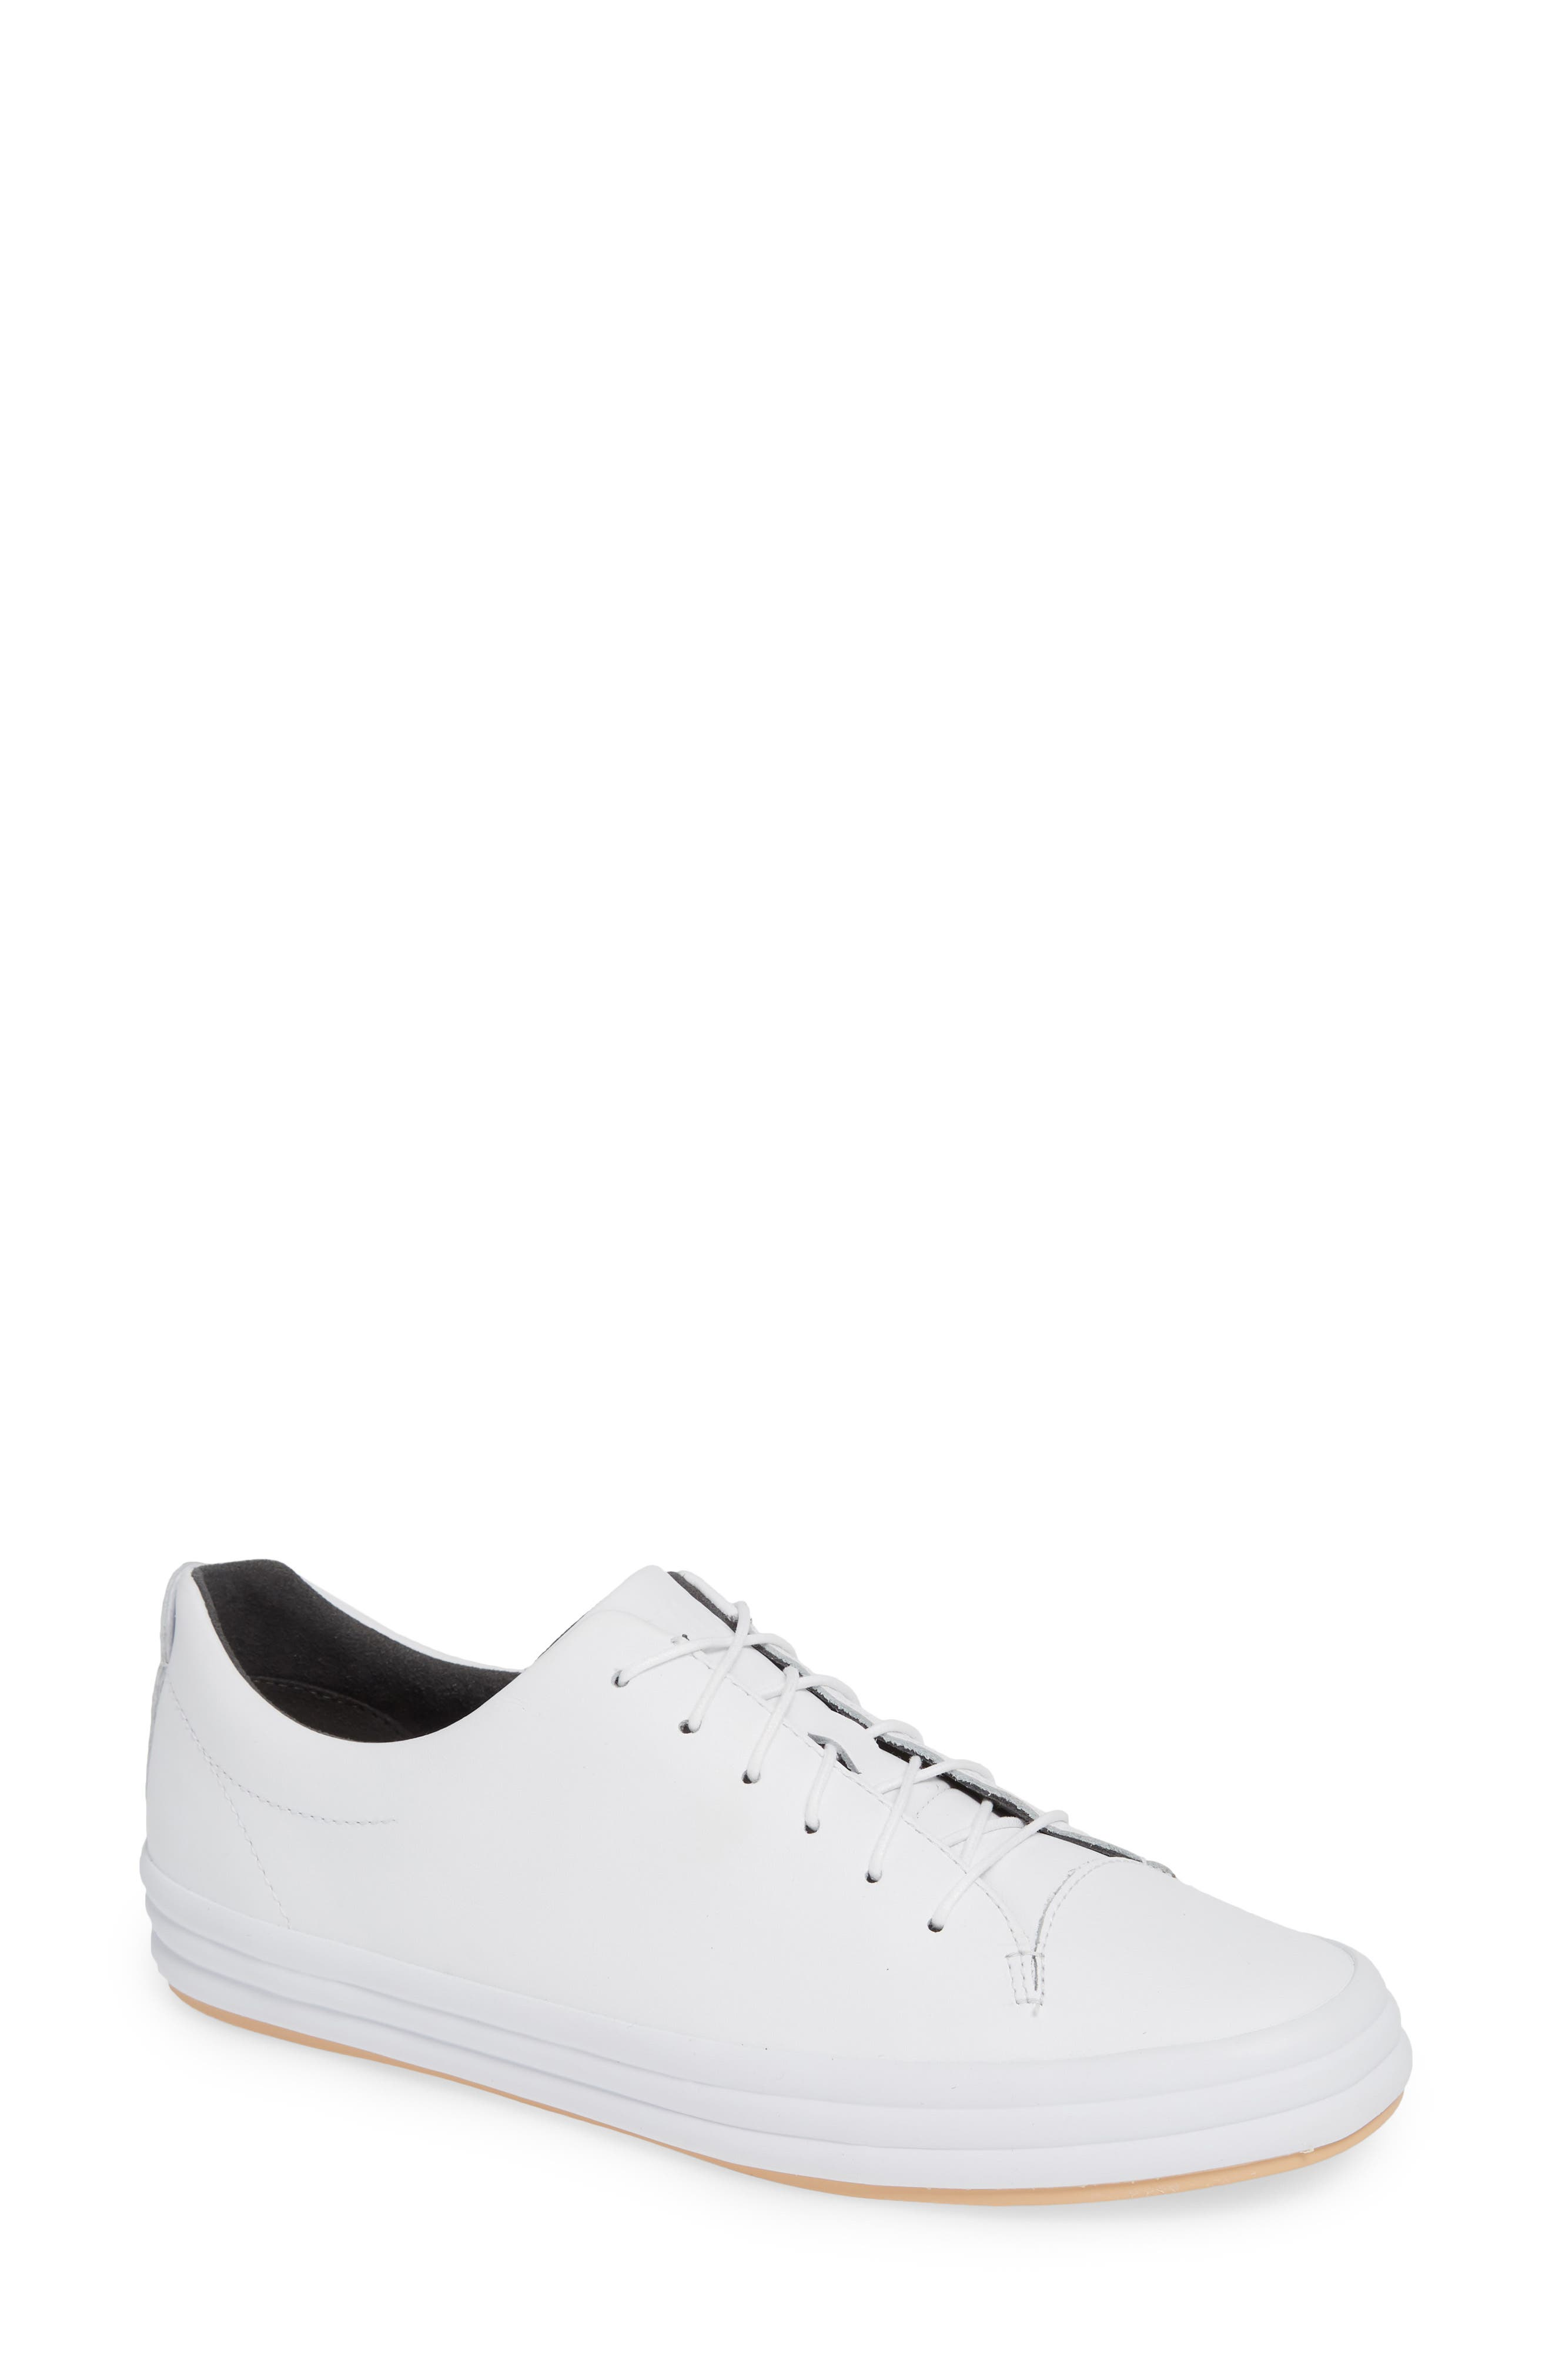 Hoops Sneaker,                             Main thumbnail 1, color,                             WHITE LEATHER